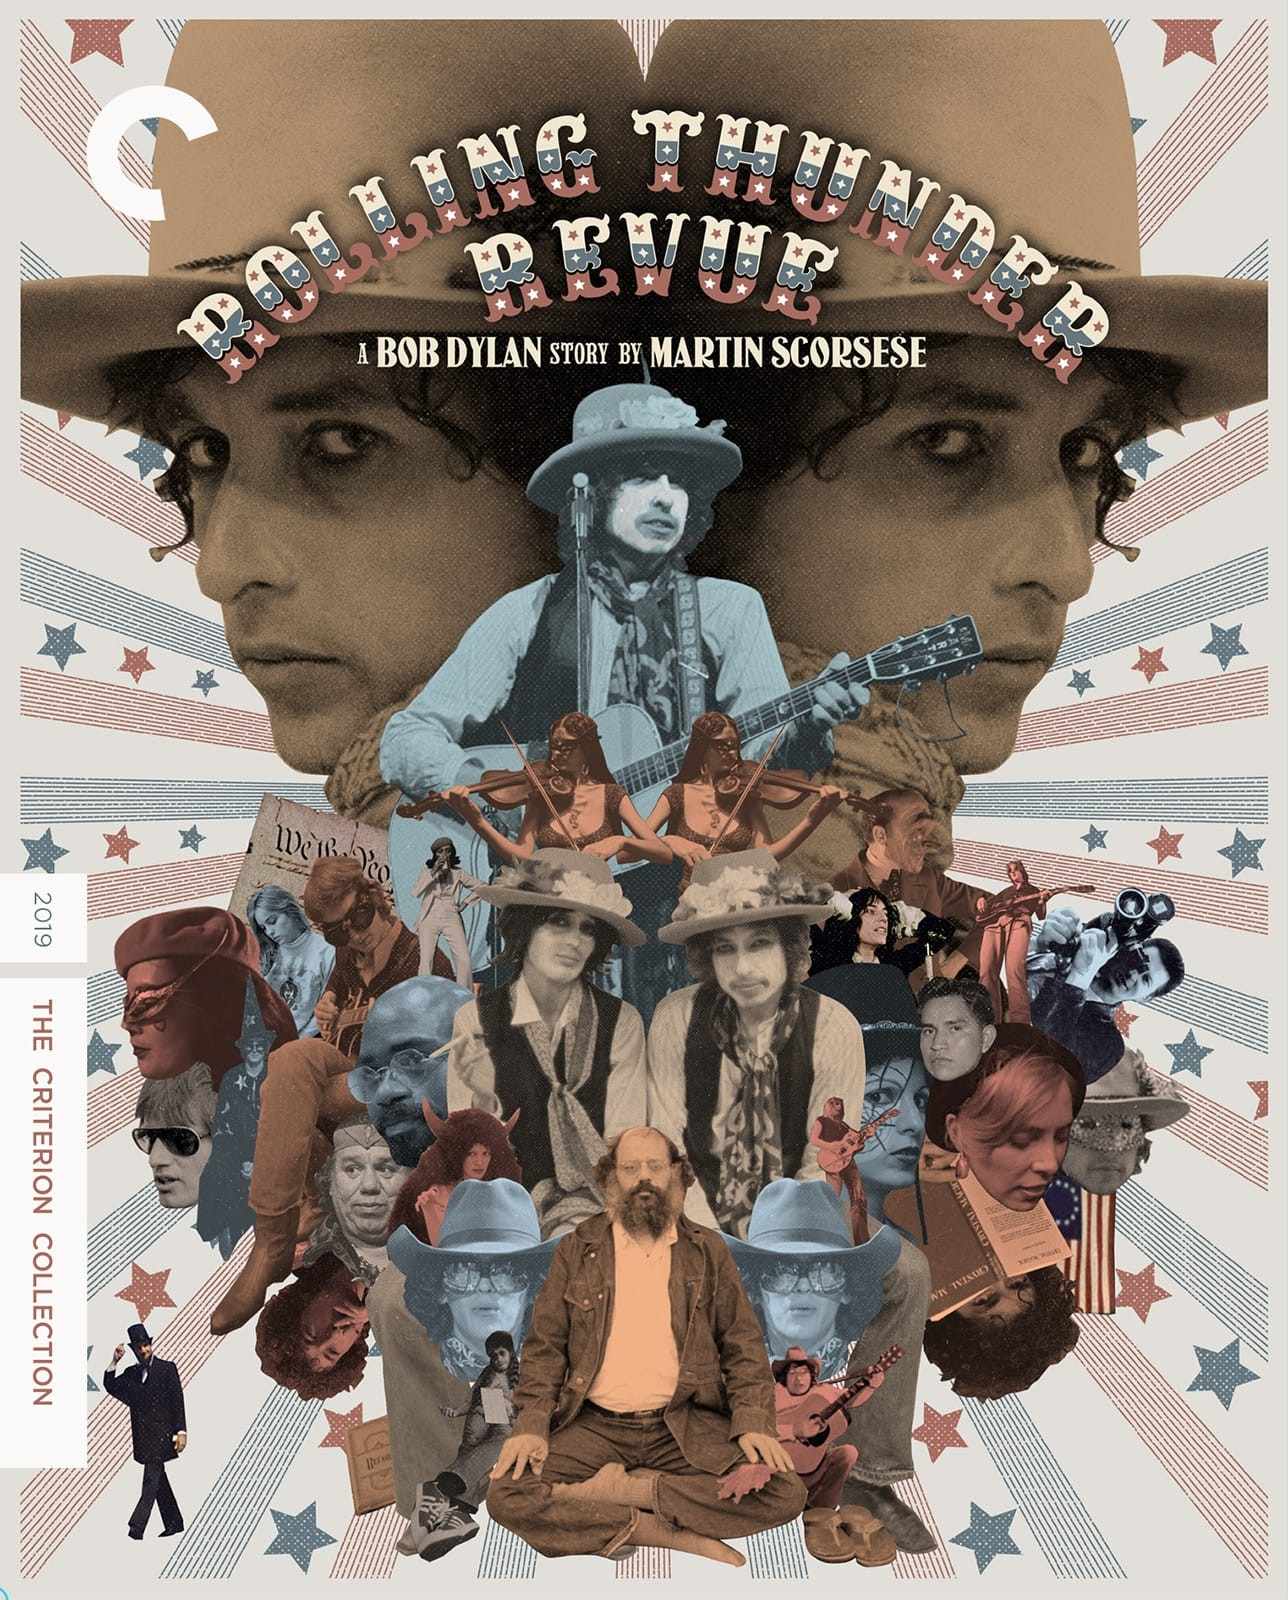 Rolling Thunder Revue: A Bob Dylan Story by Martin Scorsese (2019) | The  Criterion Collection